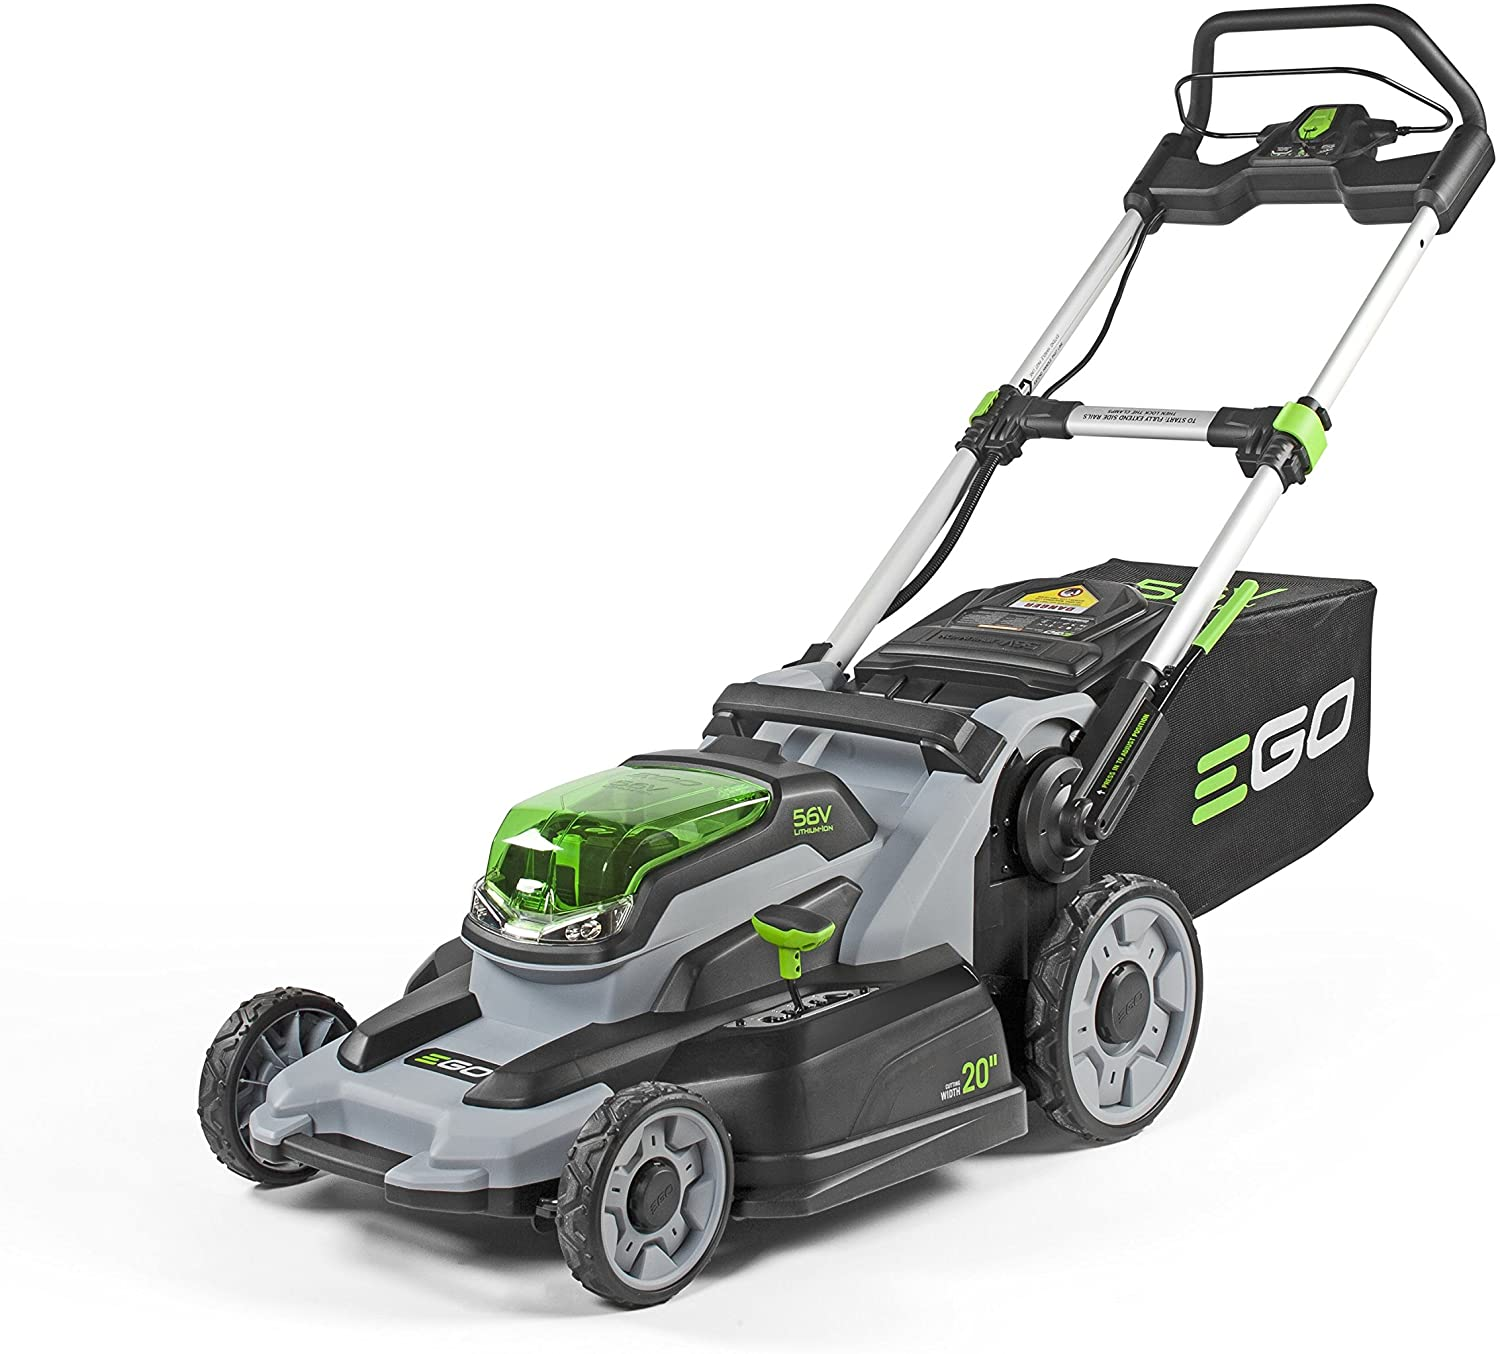 EGO Power + LM2000-S Cordless Mower Review